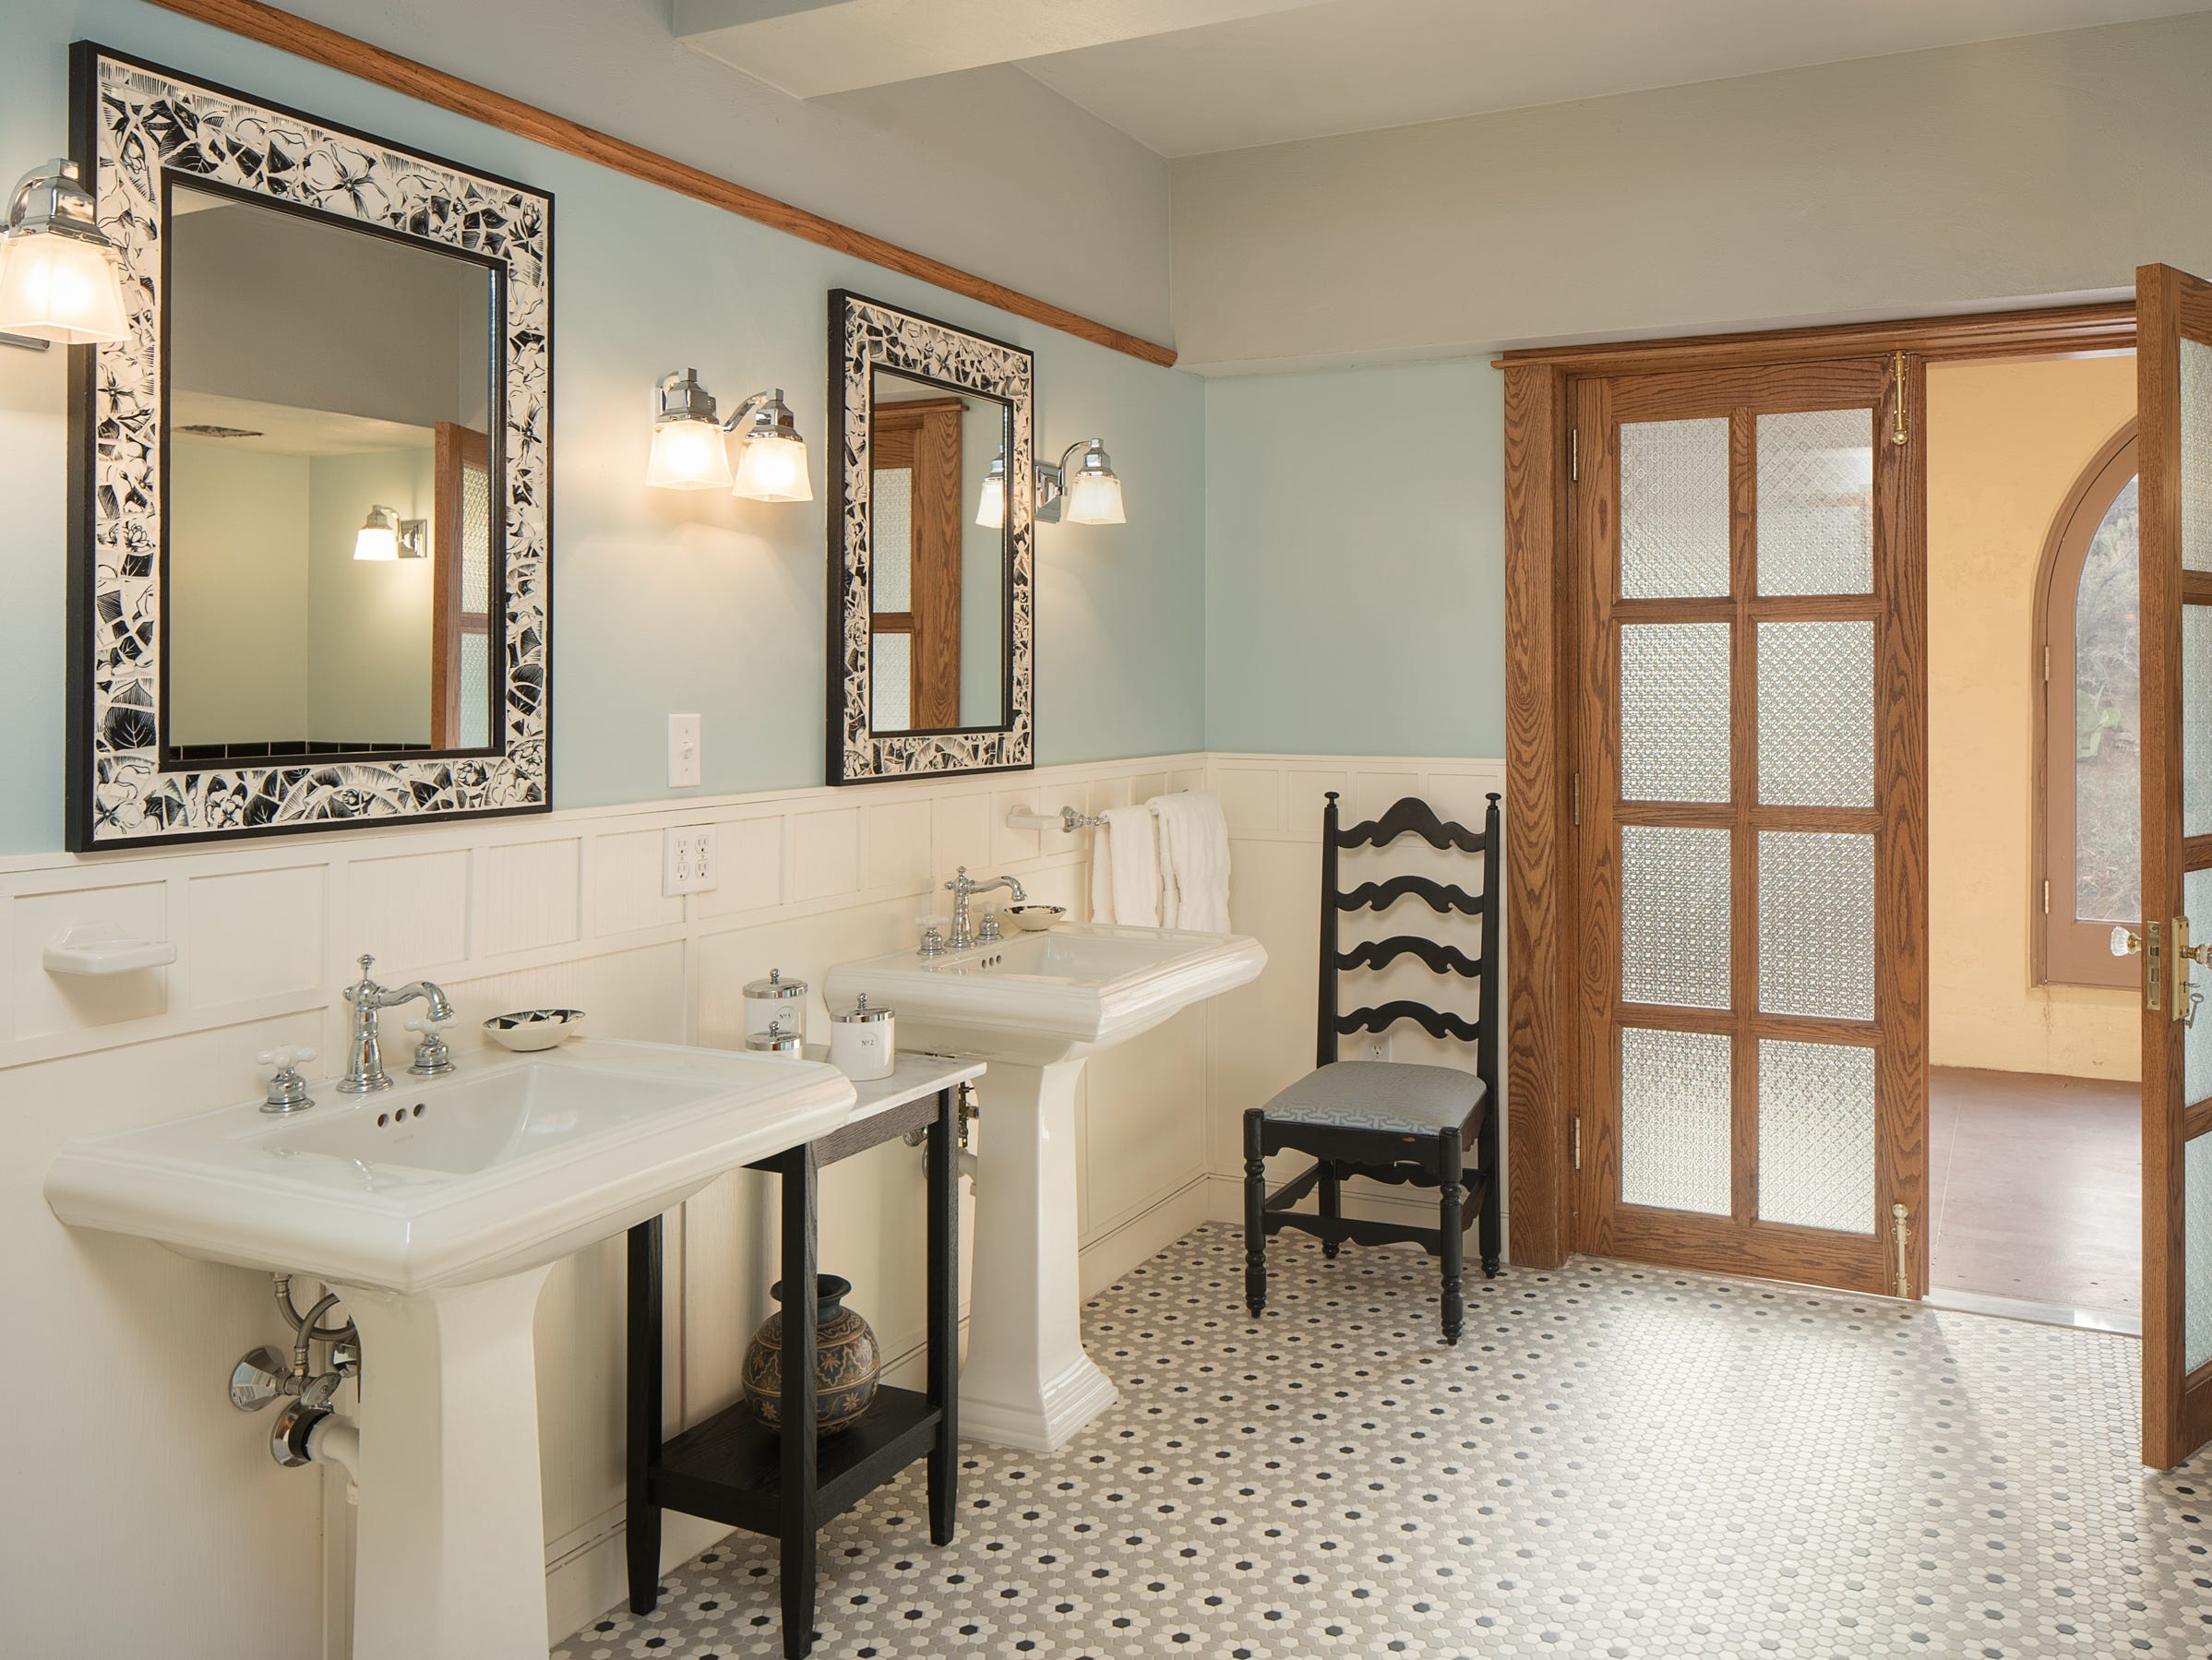 The bathroom for king bedroom No. 2 is seen at the 100-year-old former Little Daisy Hotel in Jerome, which was later turned into a single-family home and is now on the market.